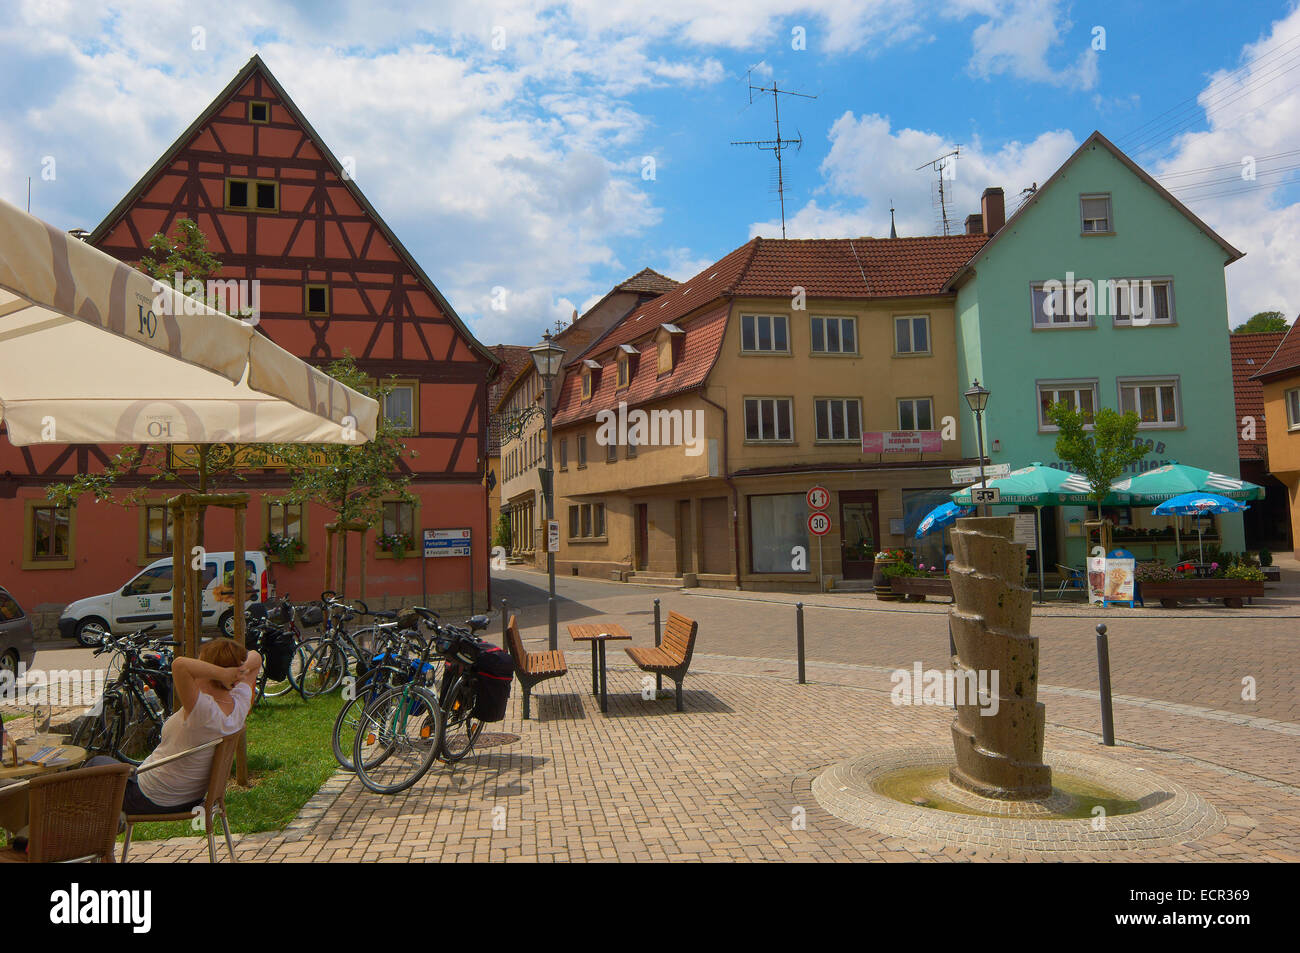 Romantische Strasse Stock Photos & Romantische Strasse Stock ...